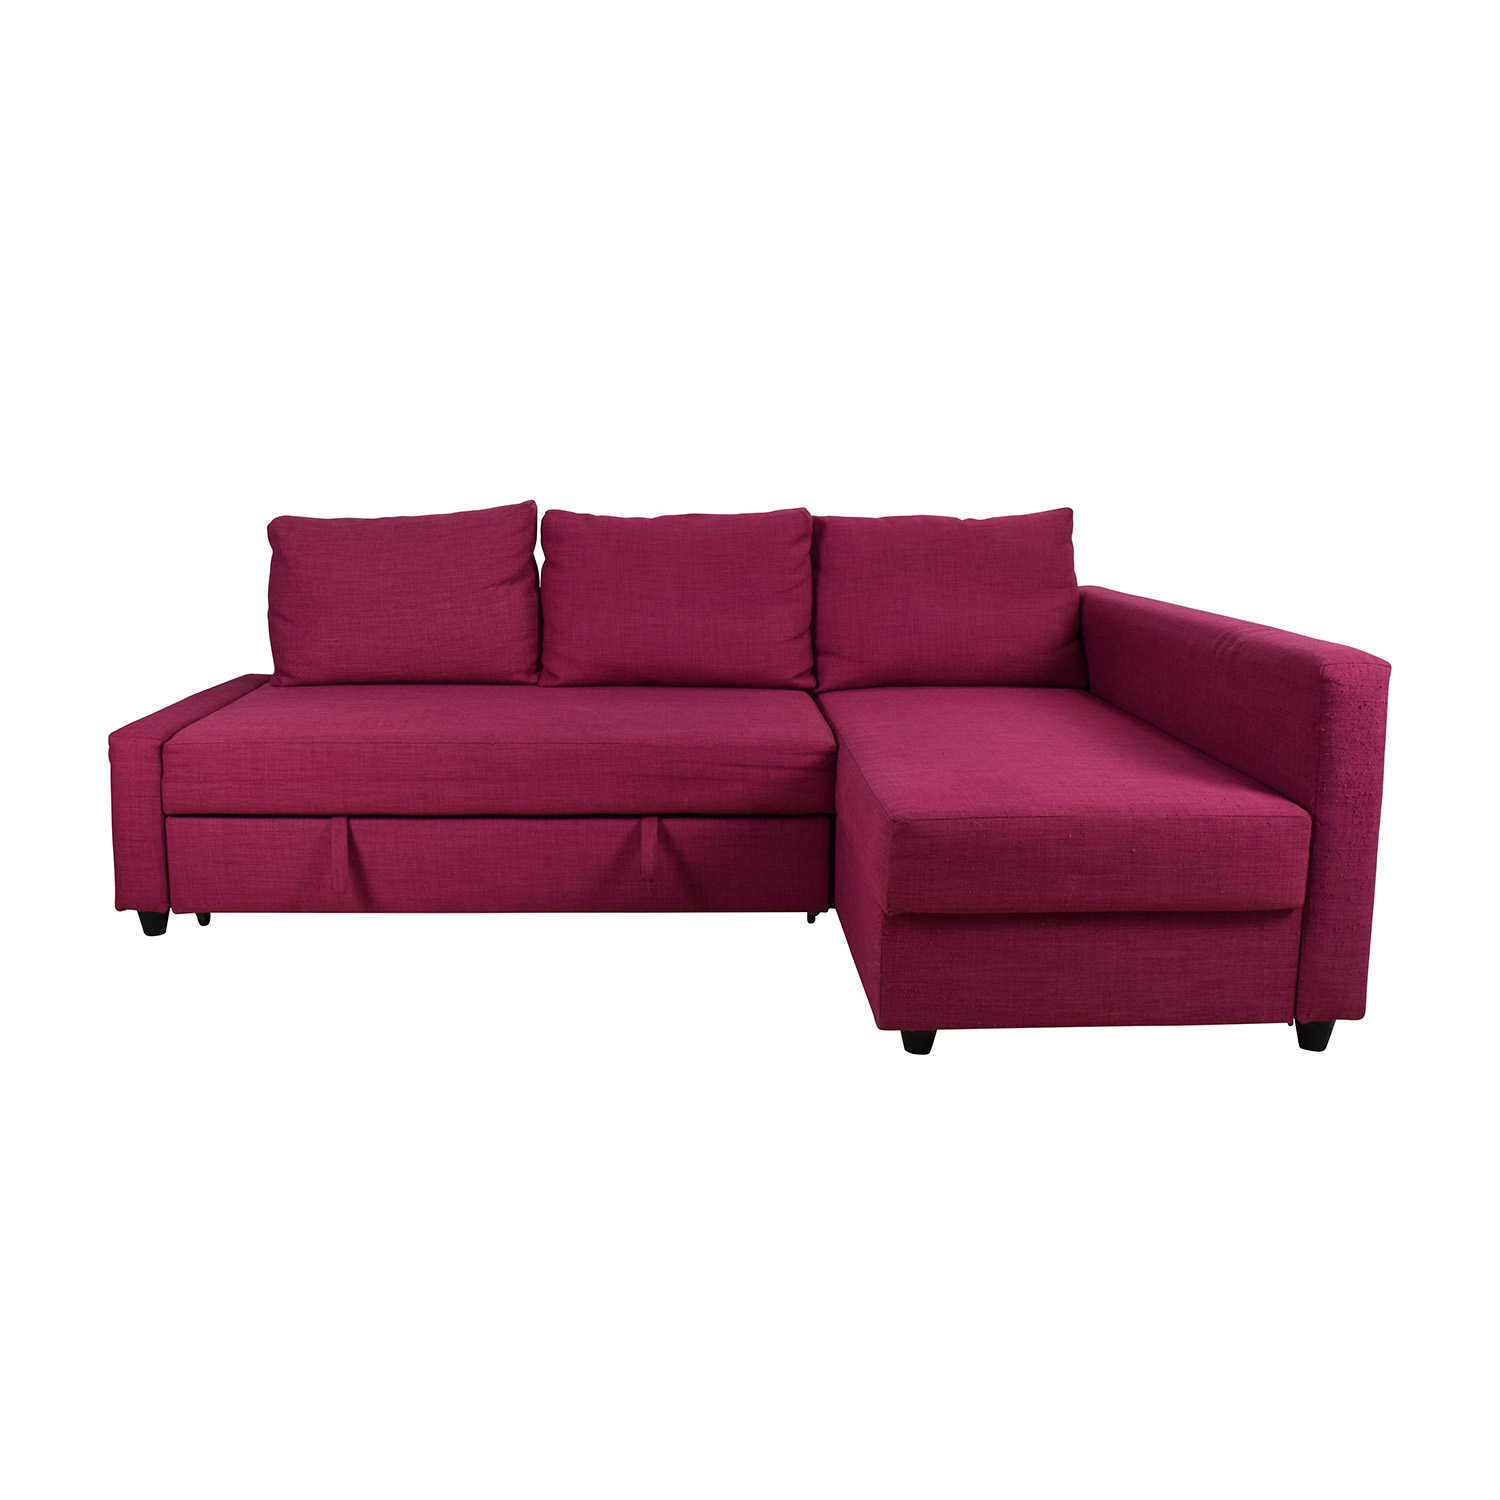 57% OFF Roche Bobois Roche Bobois Brown Leather Sectional Sofa